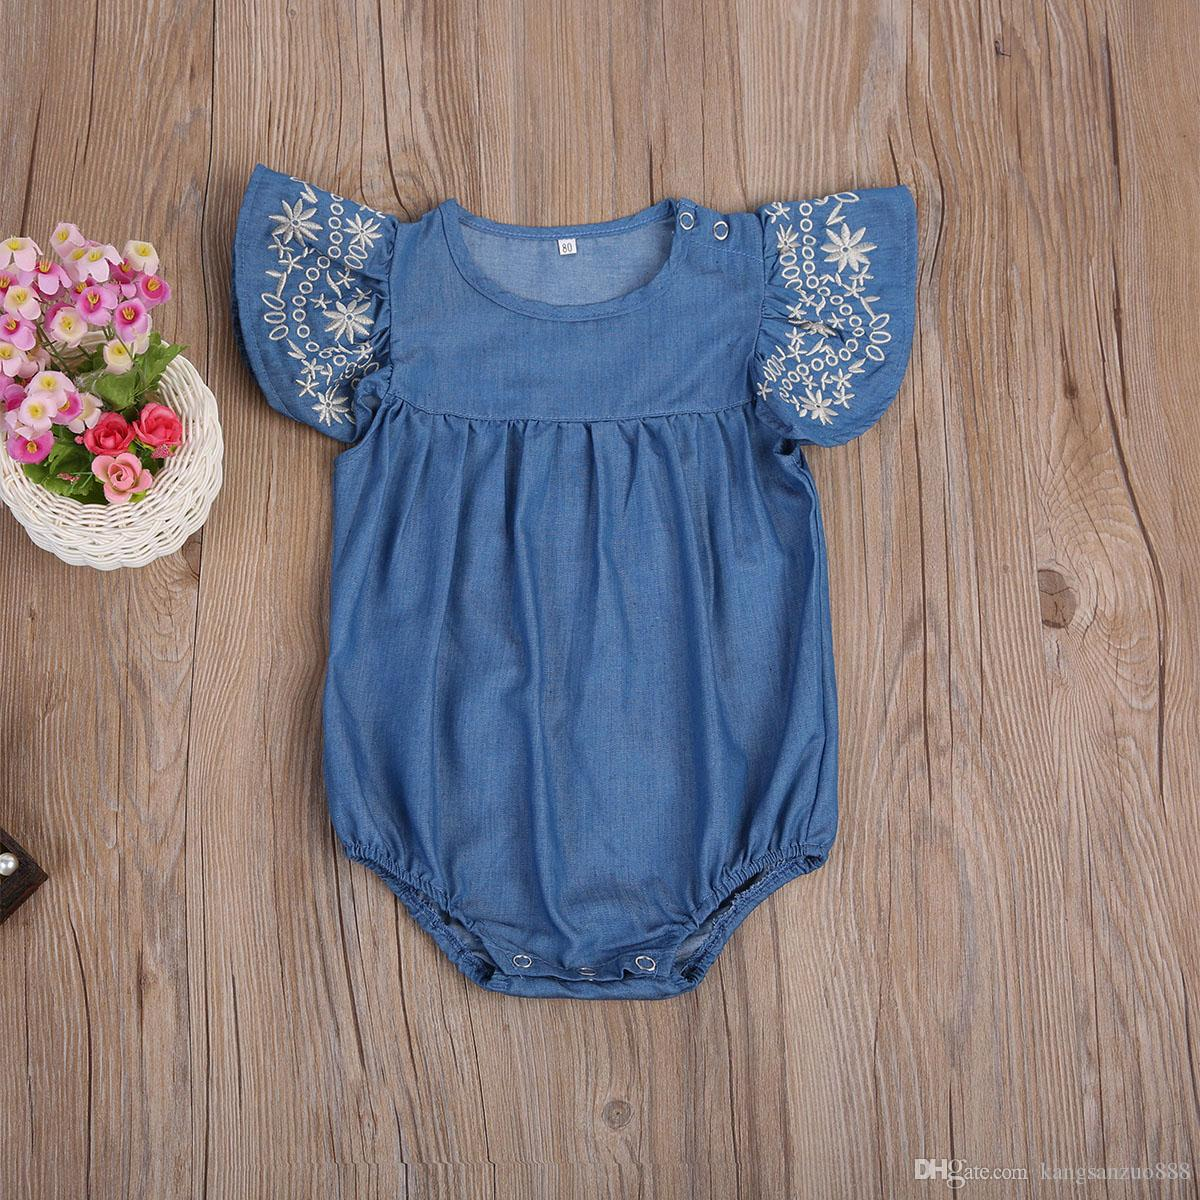 256539d72 2019 Summer Denim Romper 2018 Newborn Baby Girl Romper Ruffled Sleeve  Jumpsuit Playsuit Outfits Sunsuit Clothes Set From Kangsanzuo888, $8.83 |  DHgate.Com